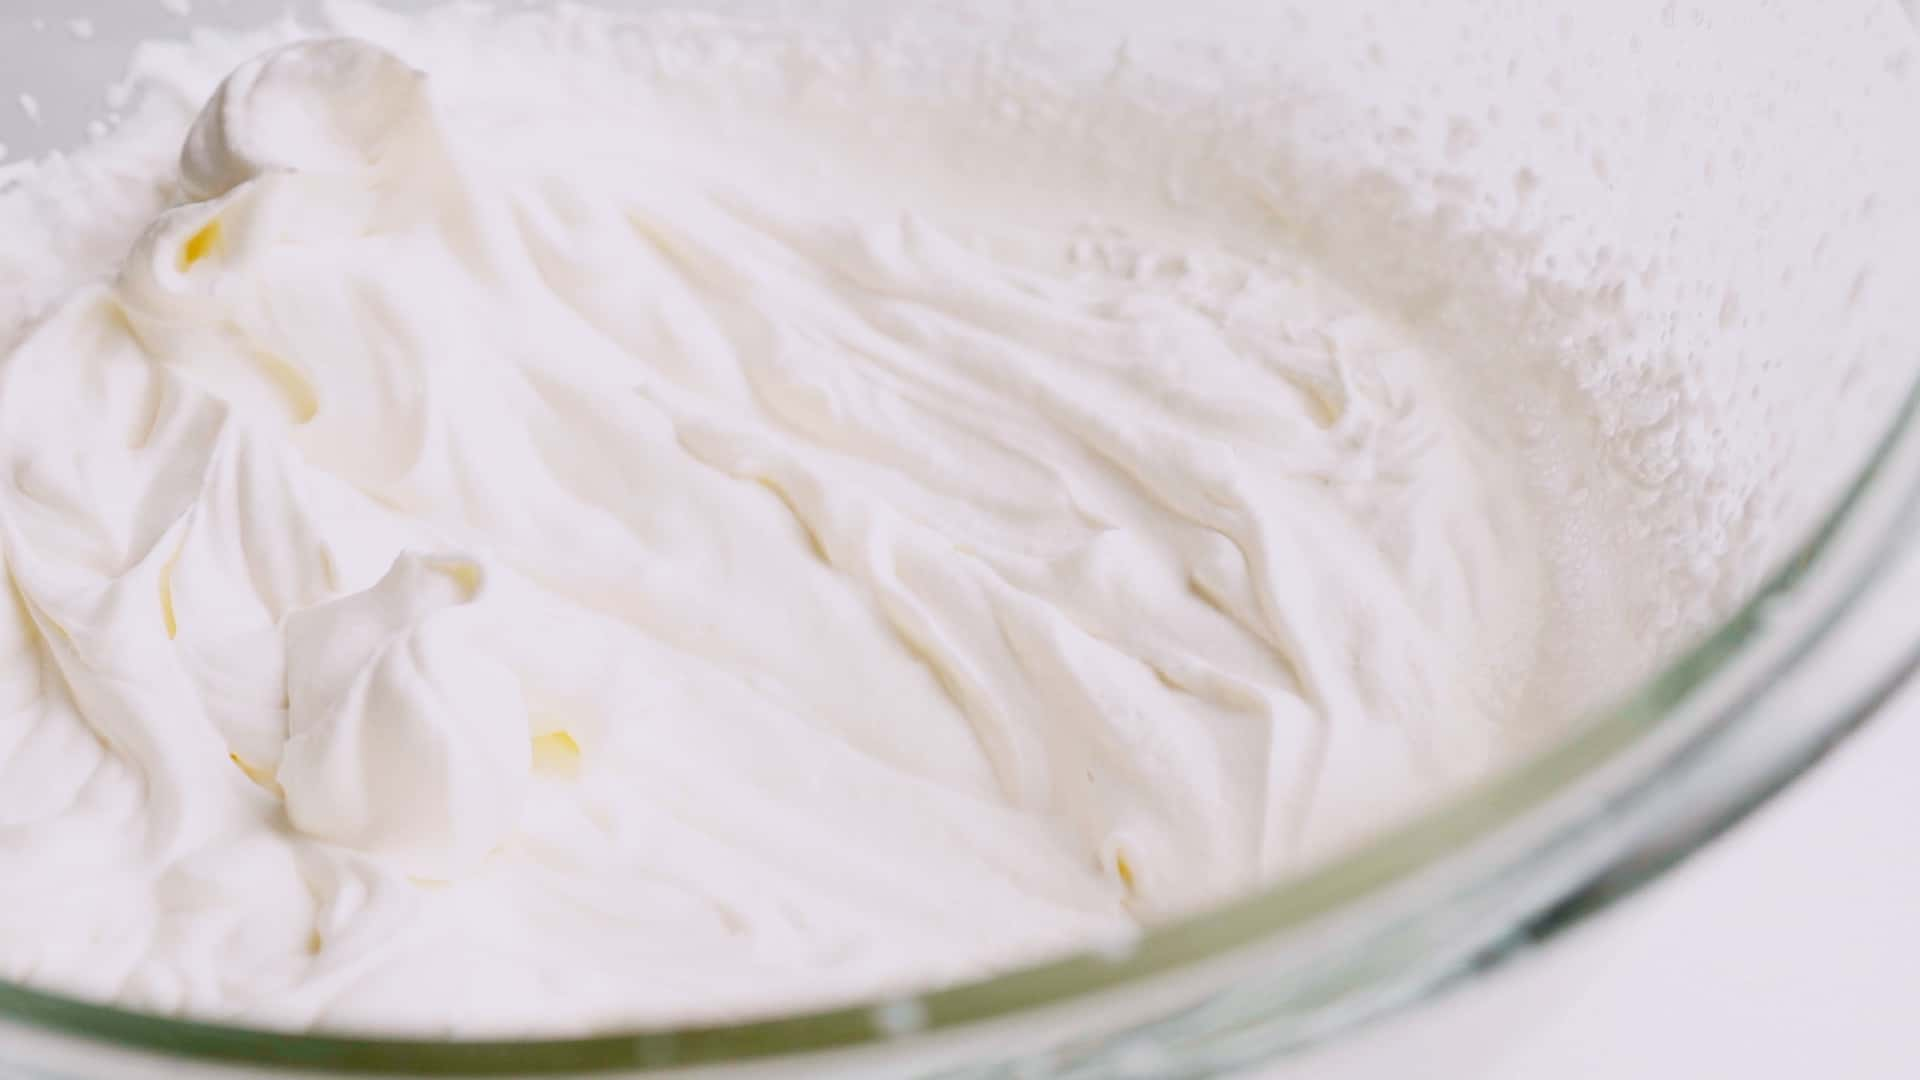 Whipped cream in glass bowl.